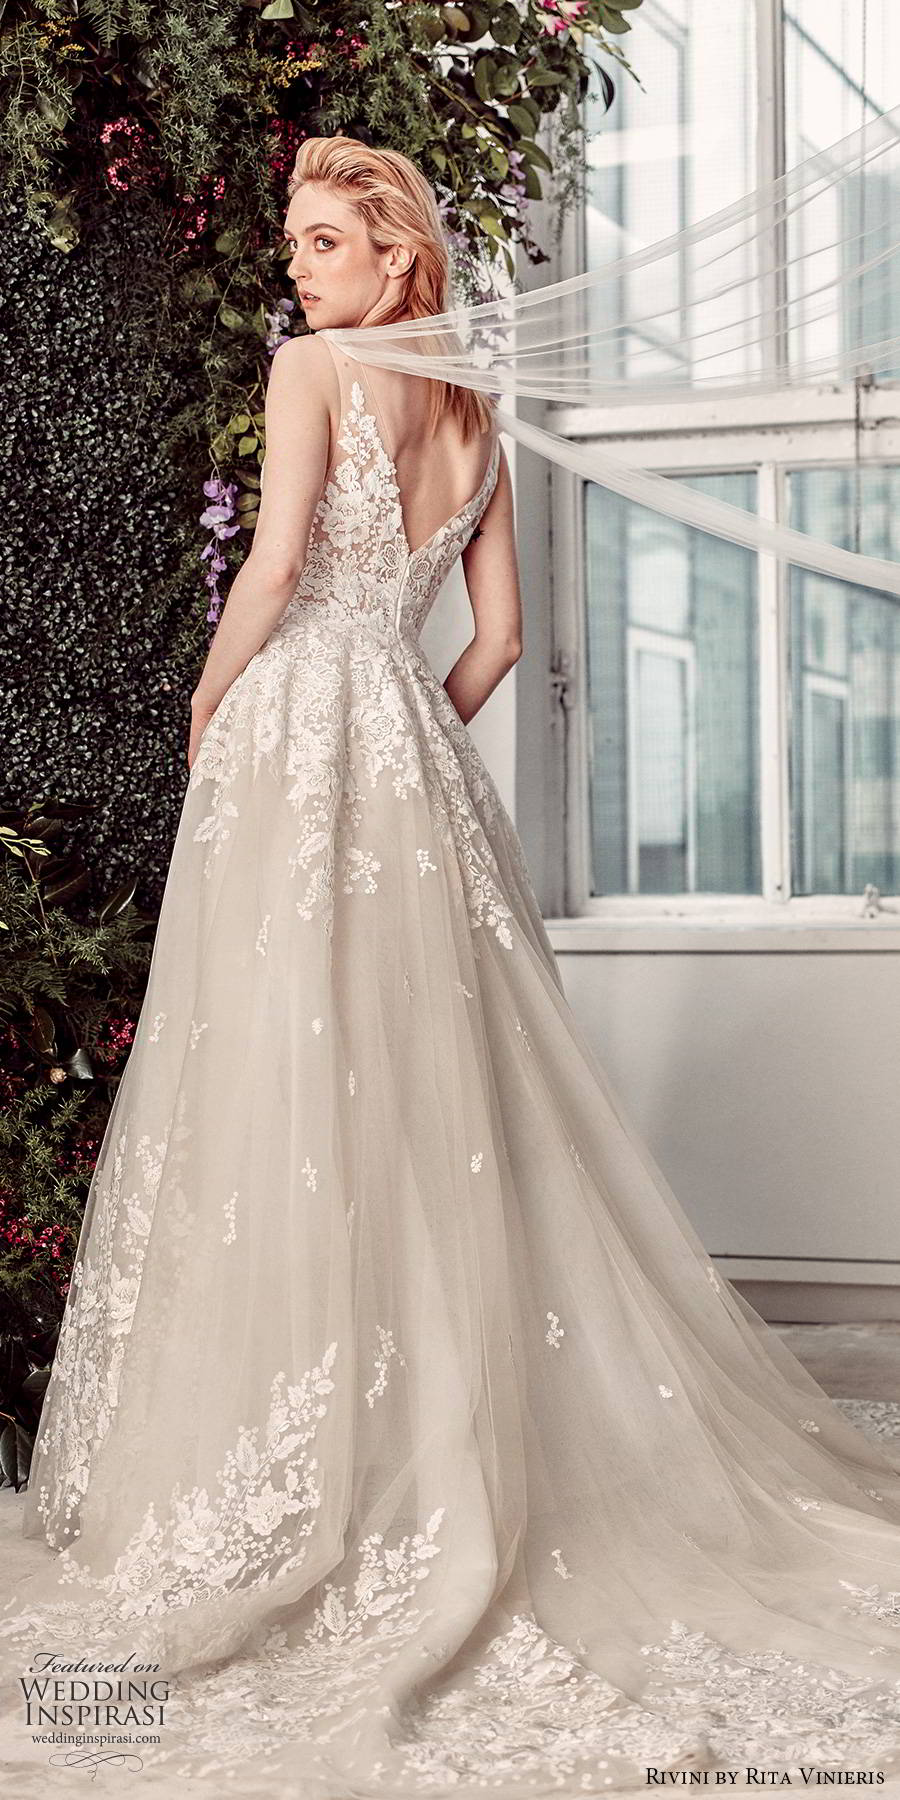 rivini by rita vinieris spring 2020 bridal sleeveless sheer straps illusion embellished lace bodice romantic princess a line ball gown wedding dress chapel train (13) bv